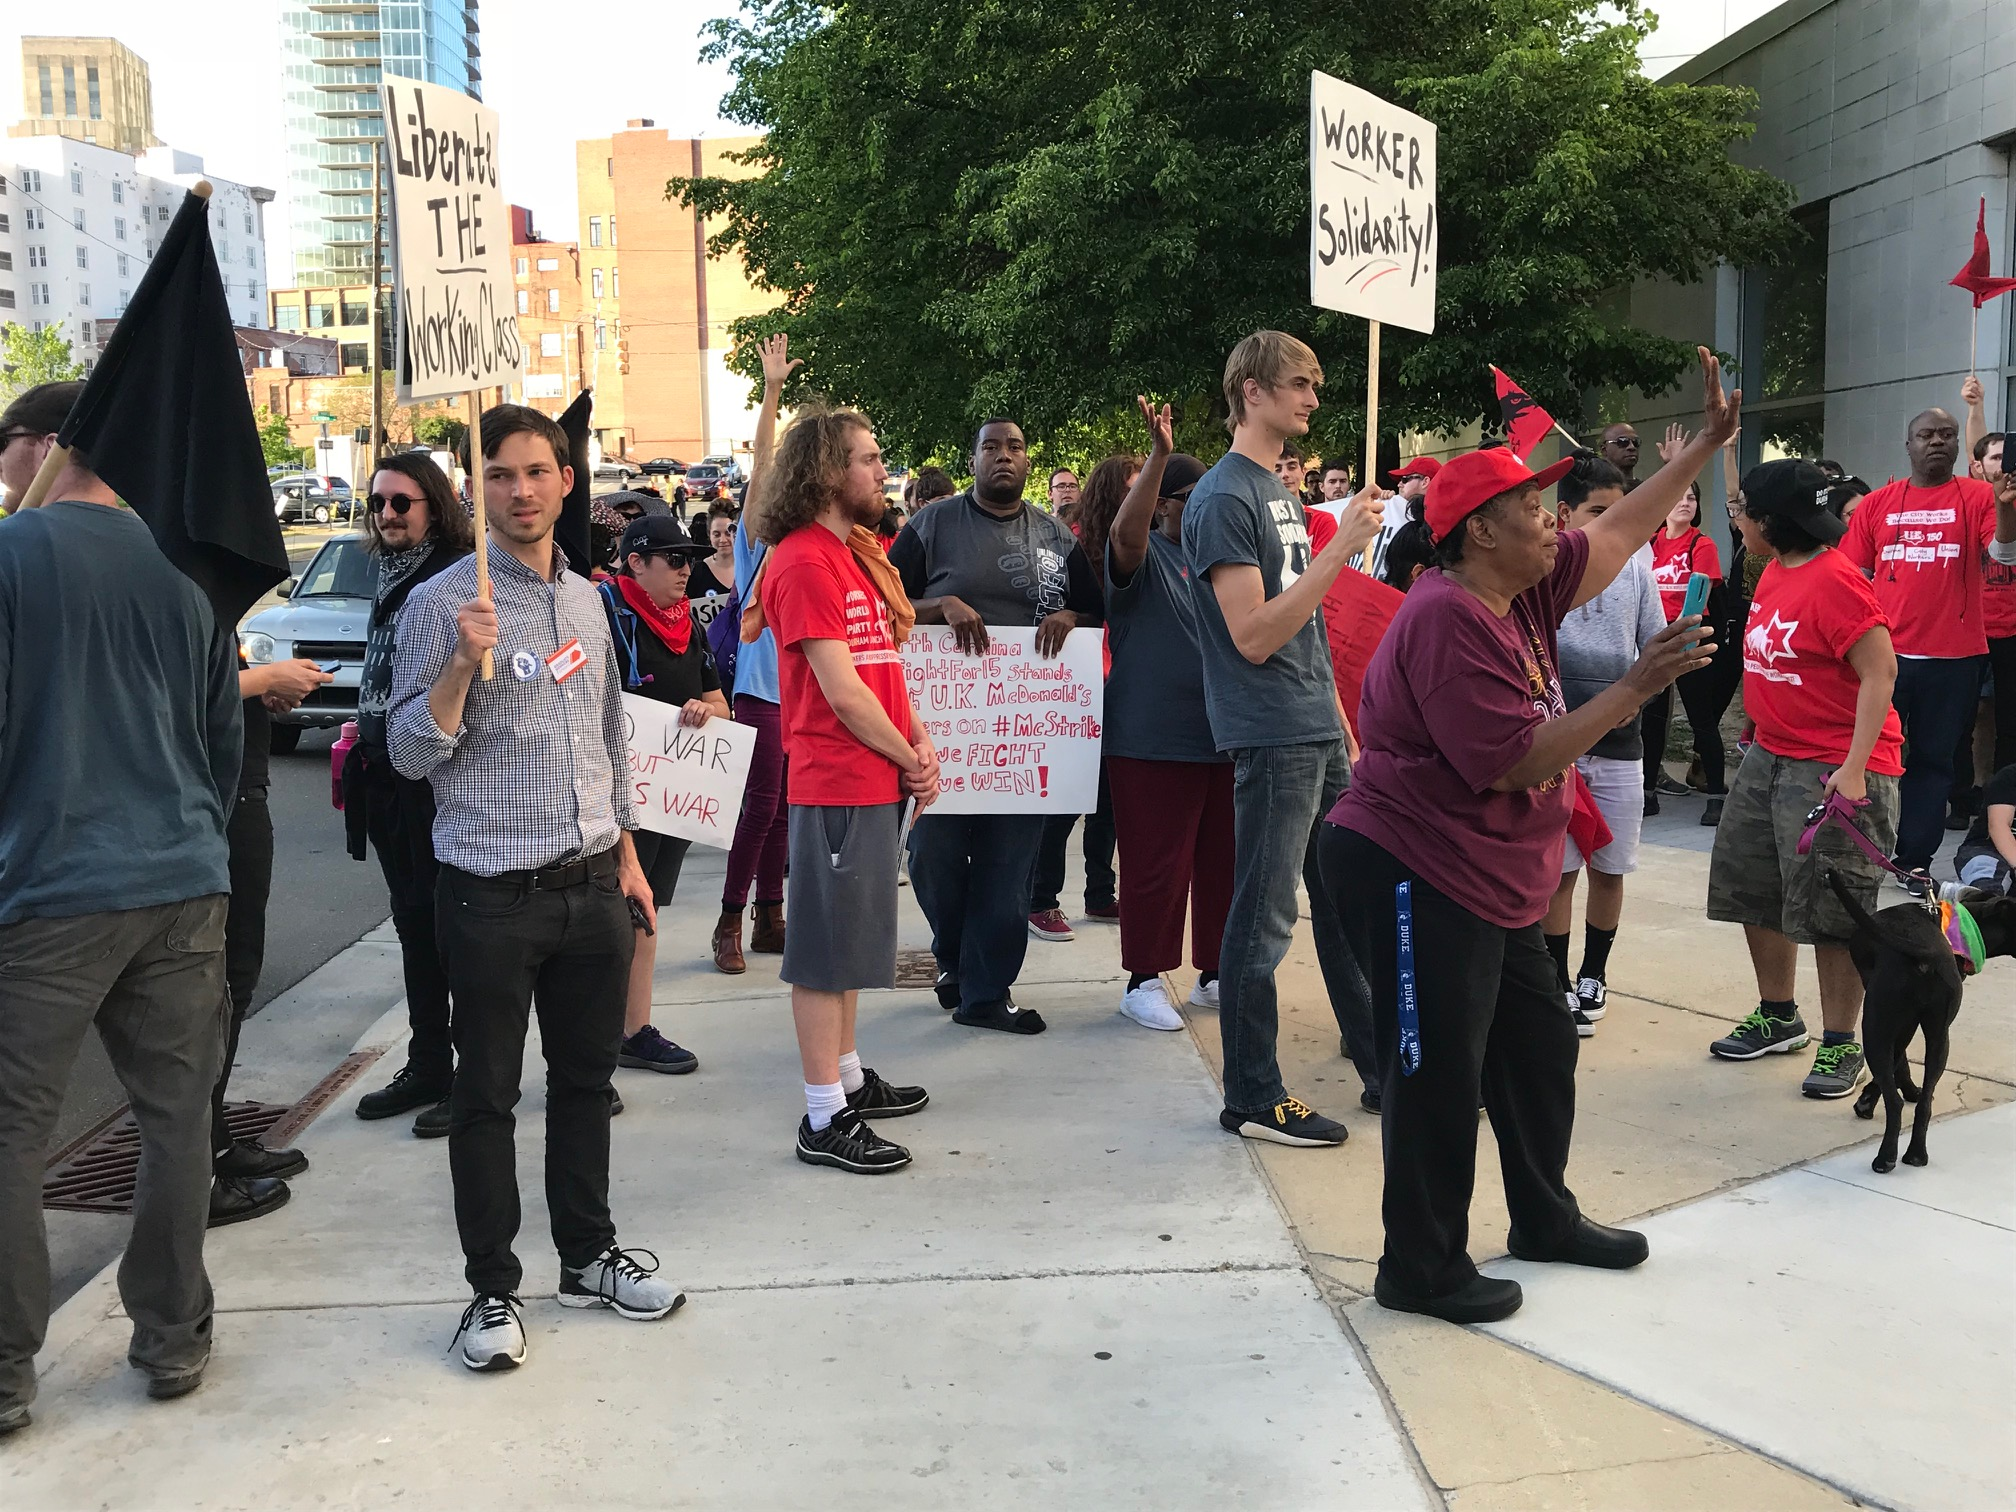 "<div class=""meta image-caption""><div class=""origin-logo origin-image wtvd""><span>WTVD</span></div><span class=""caption-text"">The Durham Workers Assembly and other protesters marched in downtown Durham on May Day to demand higher wages, union rights, an end to ICE raids and evictions. (Robert Judson)</span></div>"